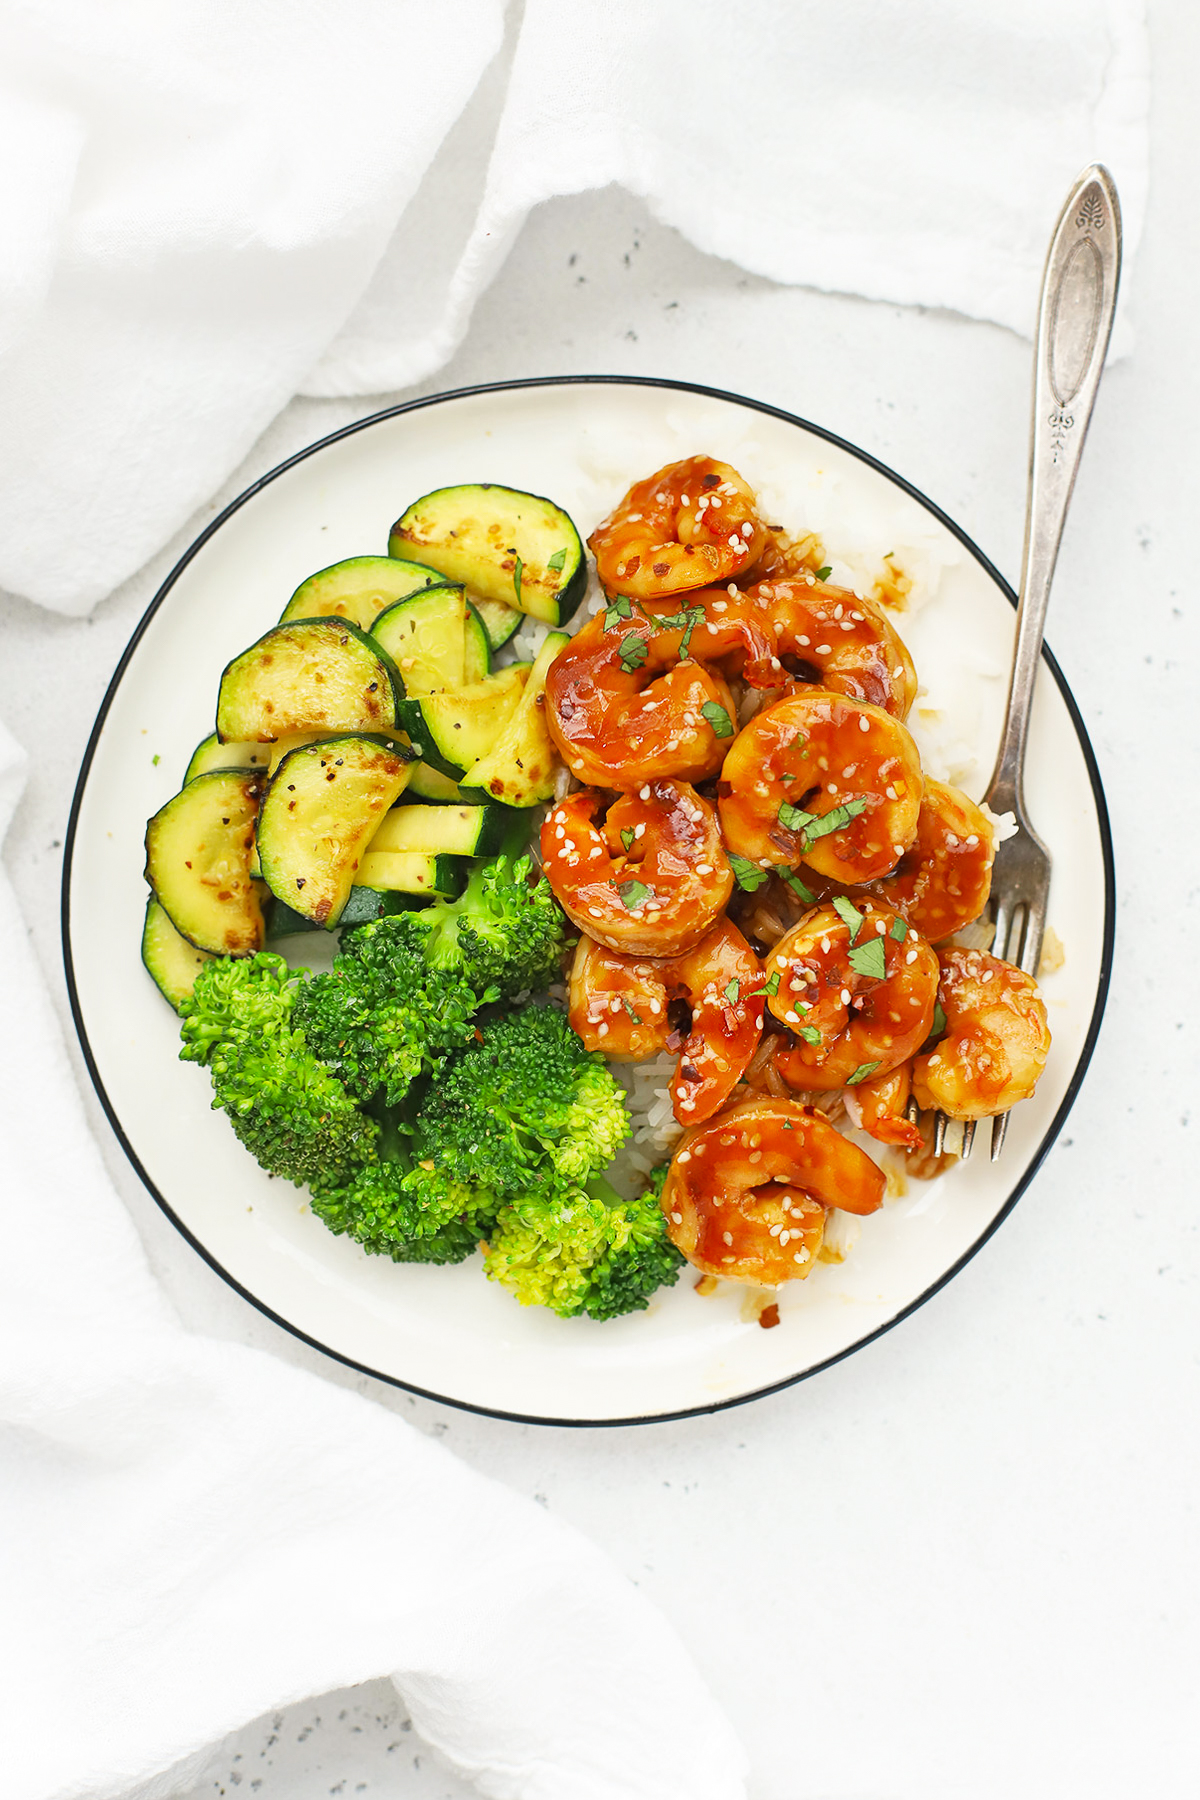 Overhead view of a plate of easy sesame shrimp with broccoli and zucchini on a white background